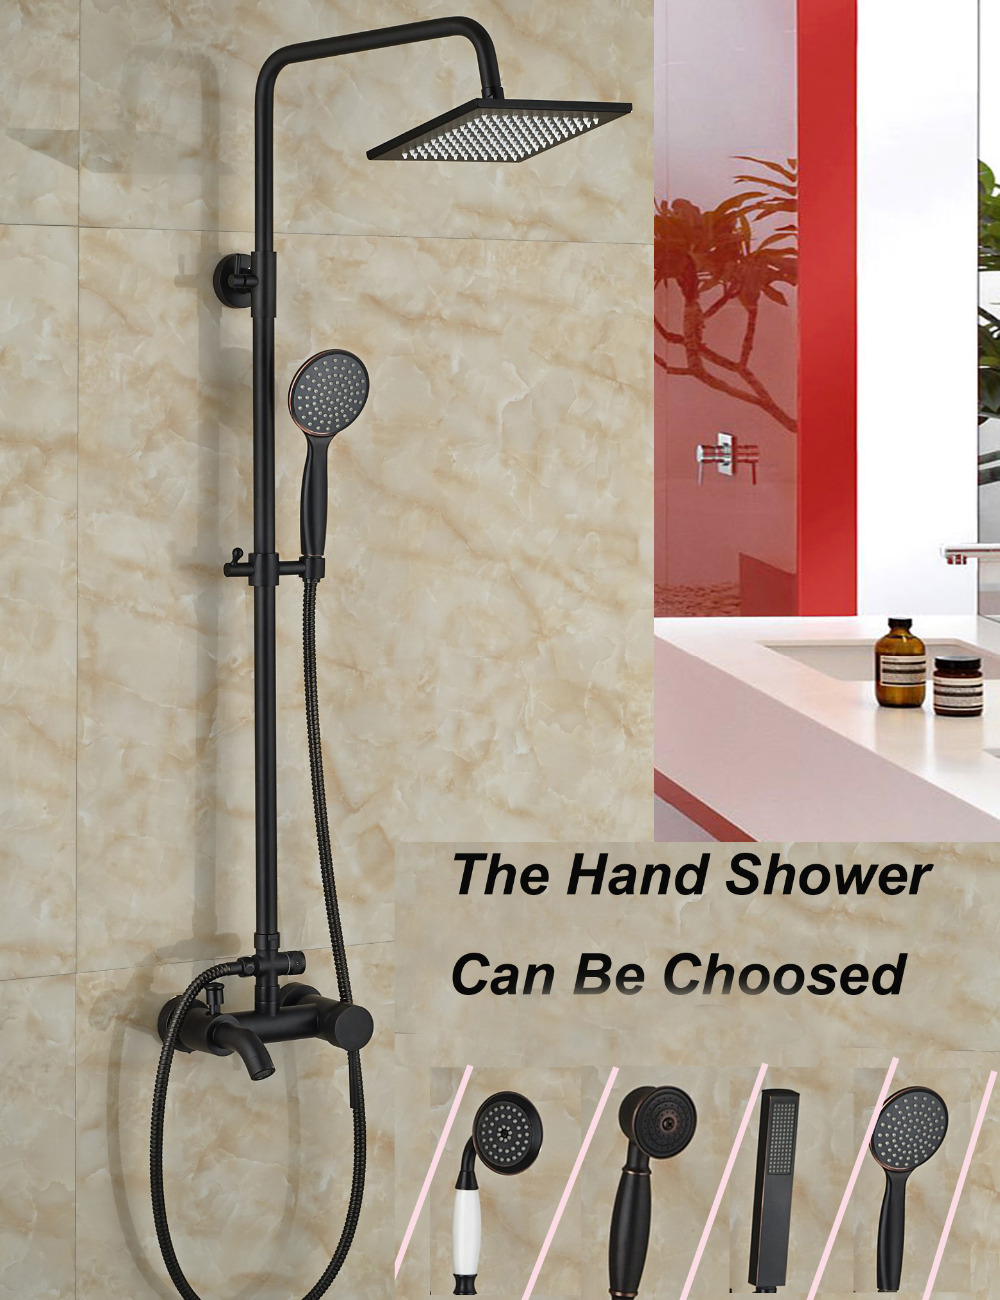 Wholesale And Retail Modern Oil Rubbed Bronze Bathroom Square Rain Shower Head Faucet Tub Mixer Tap Hand Unit modern wall mounted round 8 rain shower head valve mixer tap oil rubbed bronze